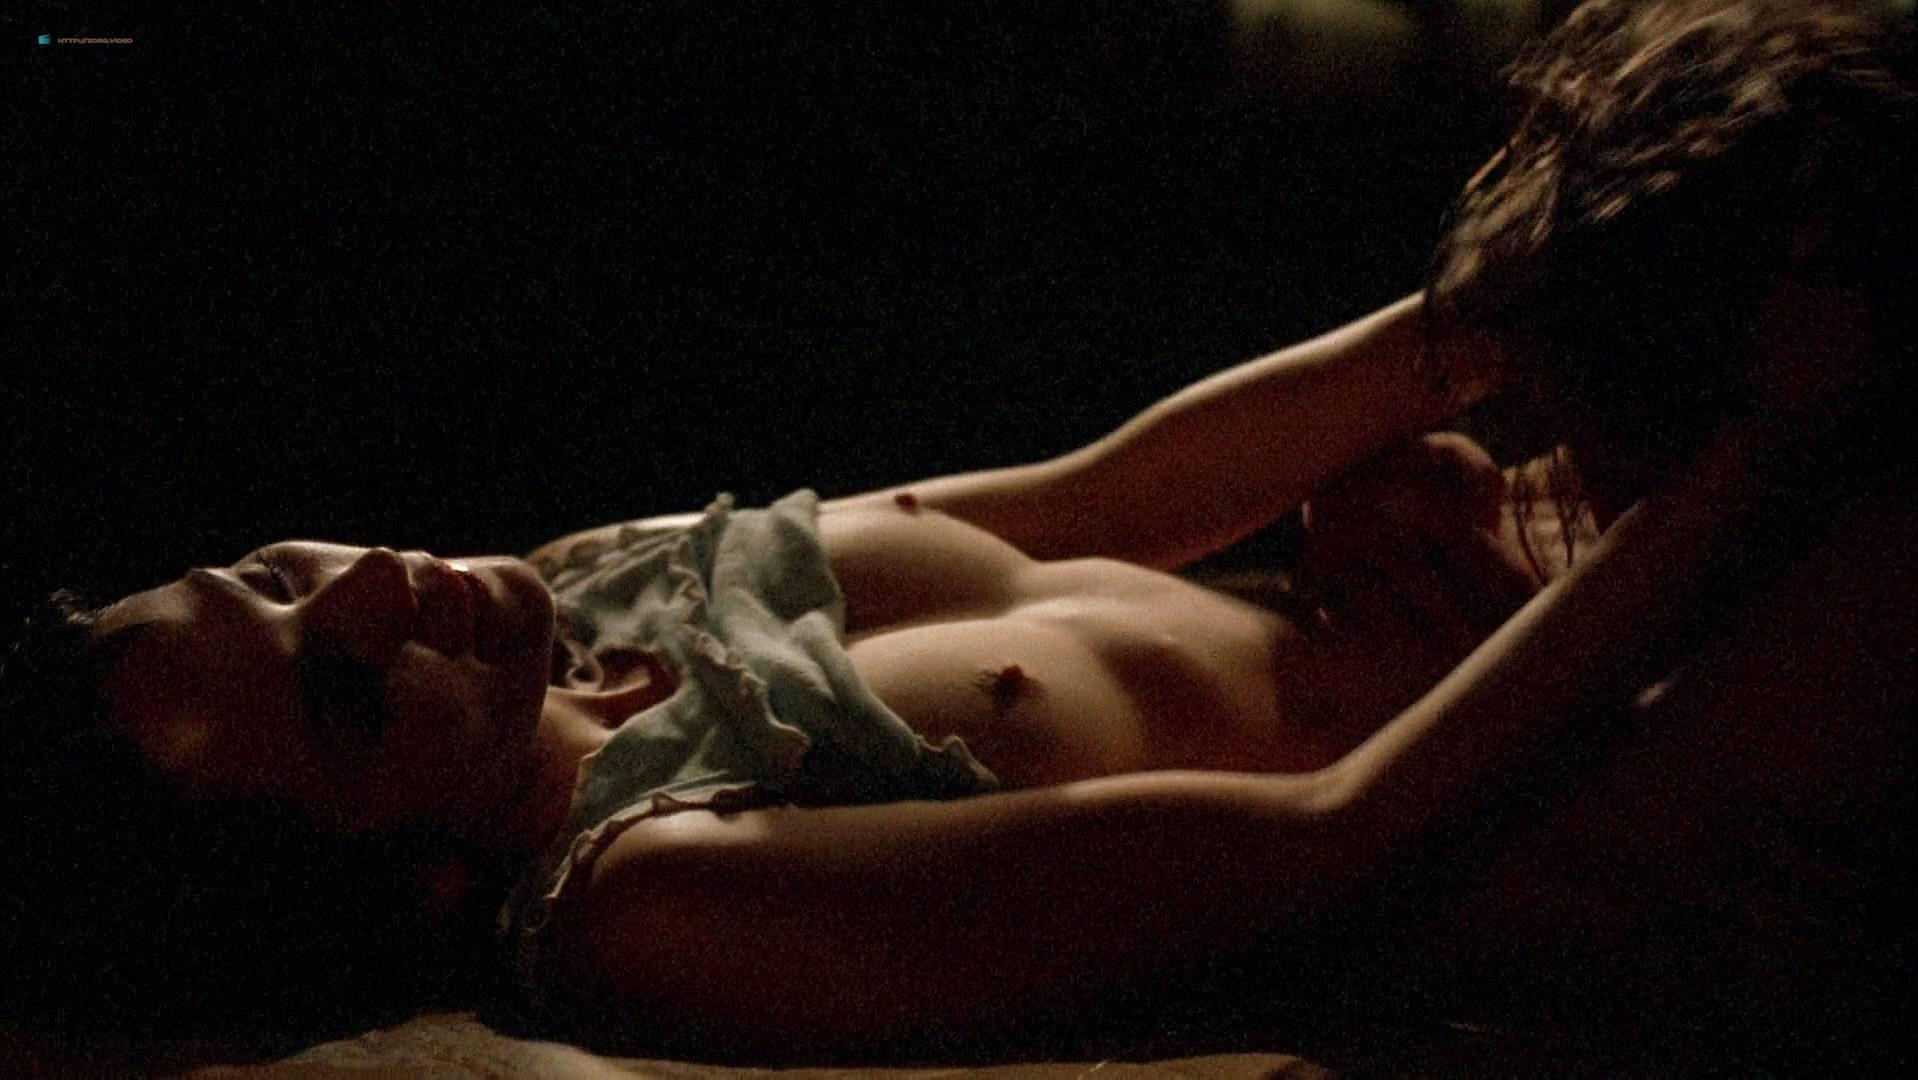 Natasha Gregson Wagner nude - Another Day in Paradise (1998)